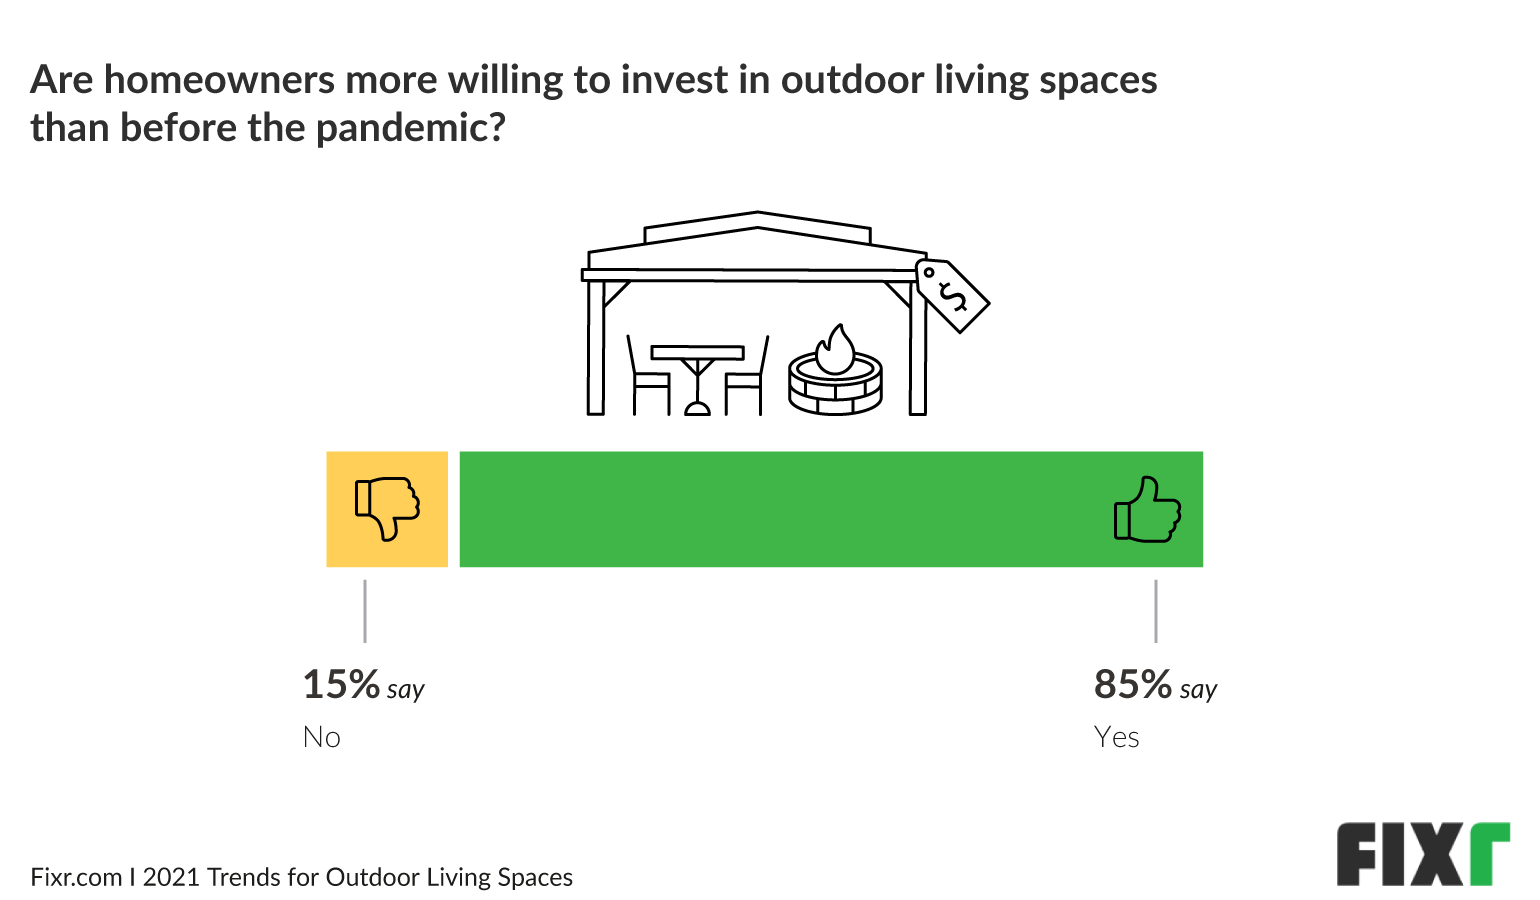 Outdoor living trends in 2021 - Fixr.com People are more willing to invest in outdoor living spaces